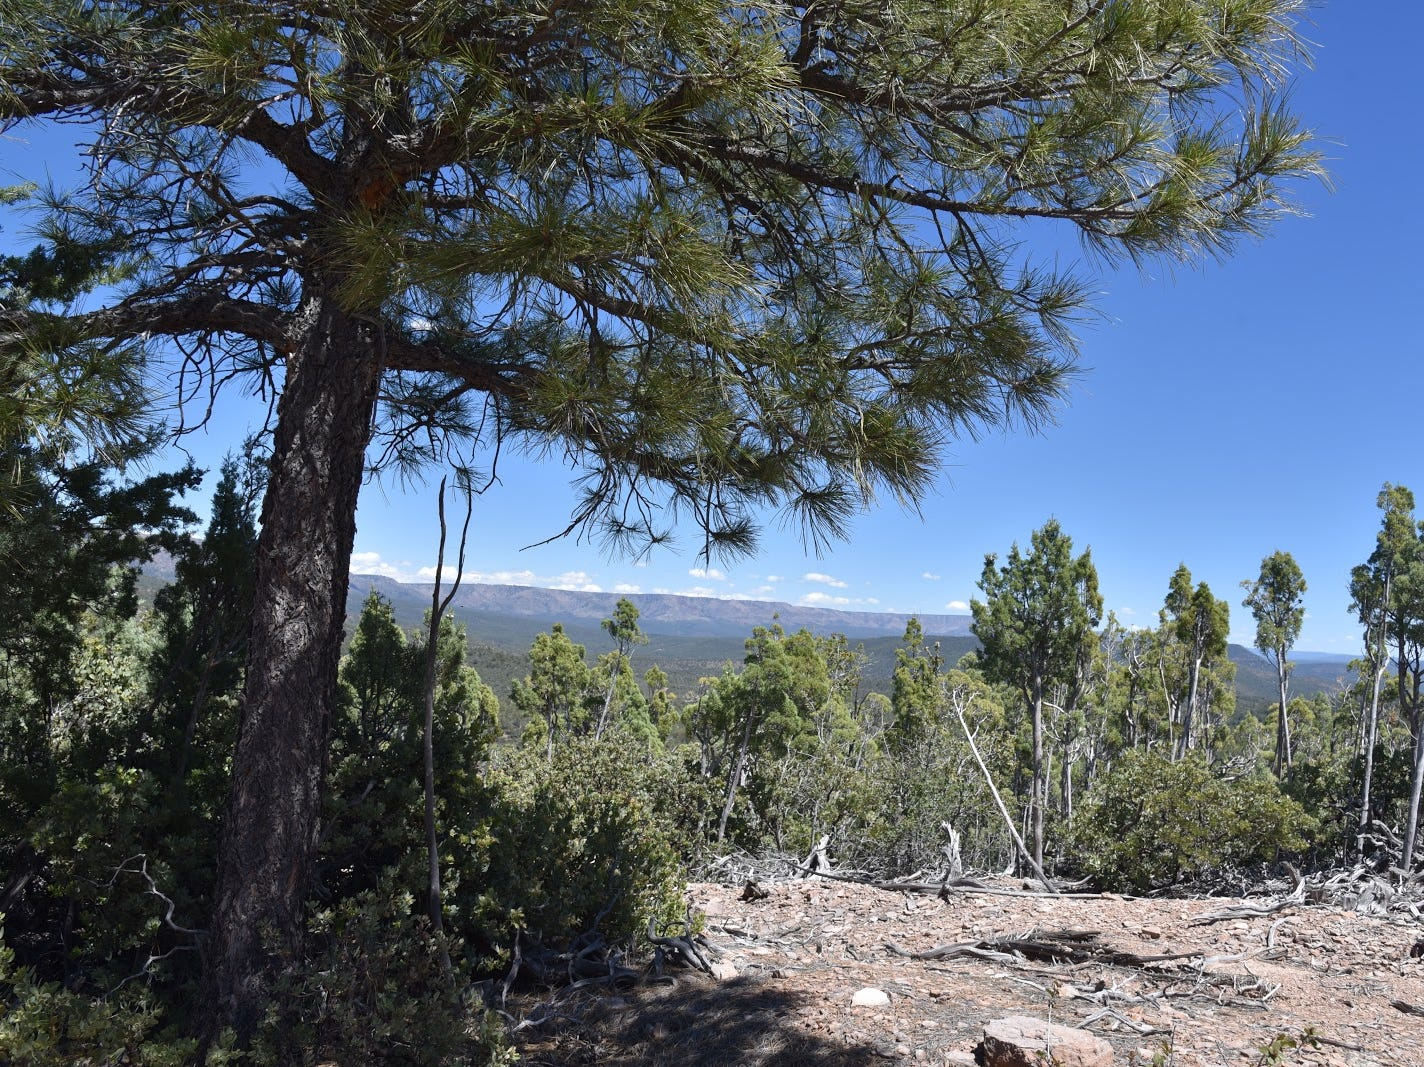 The Mogollon Rim as seen from Forest Road 322.